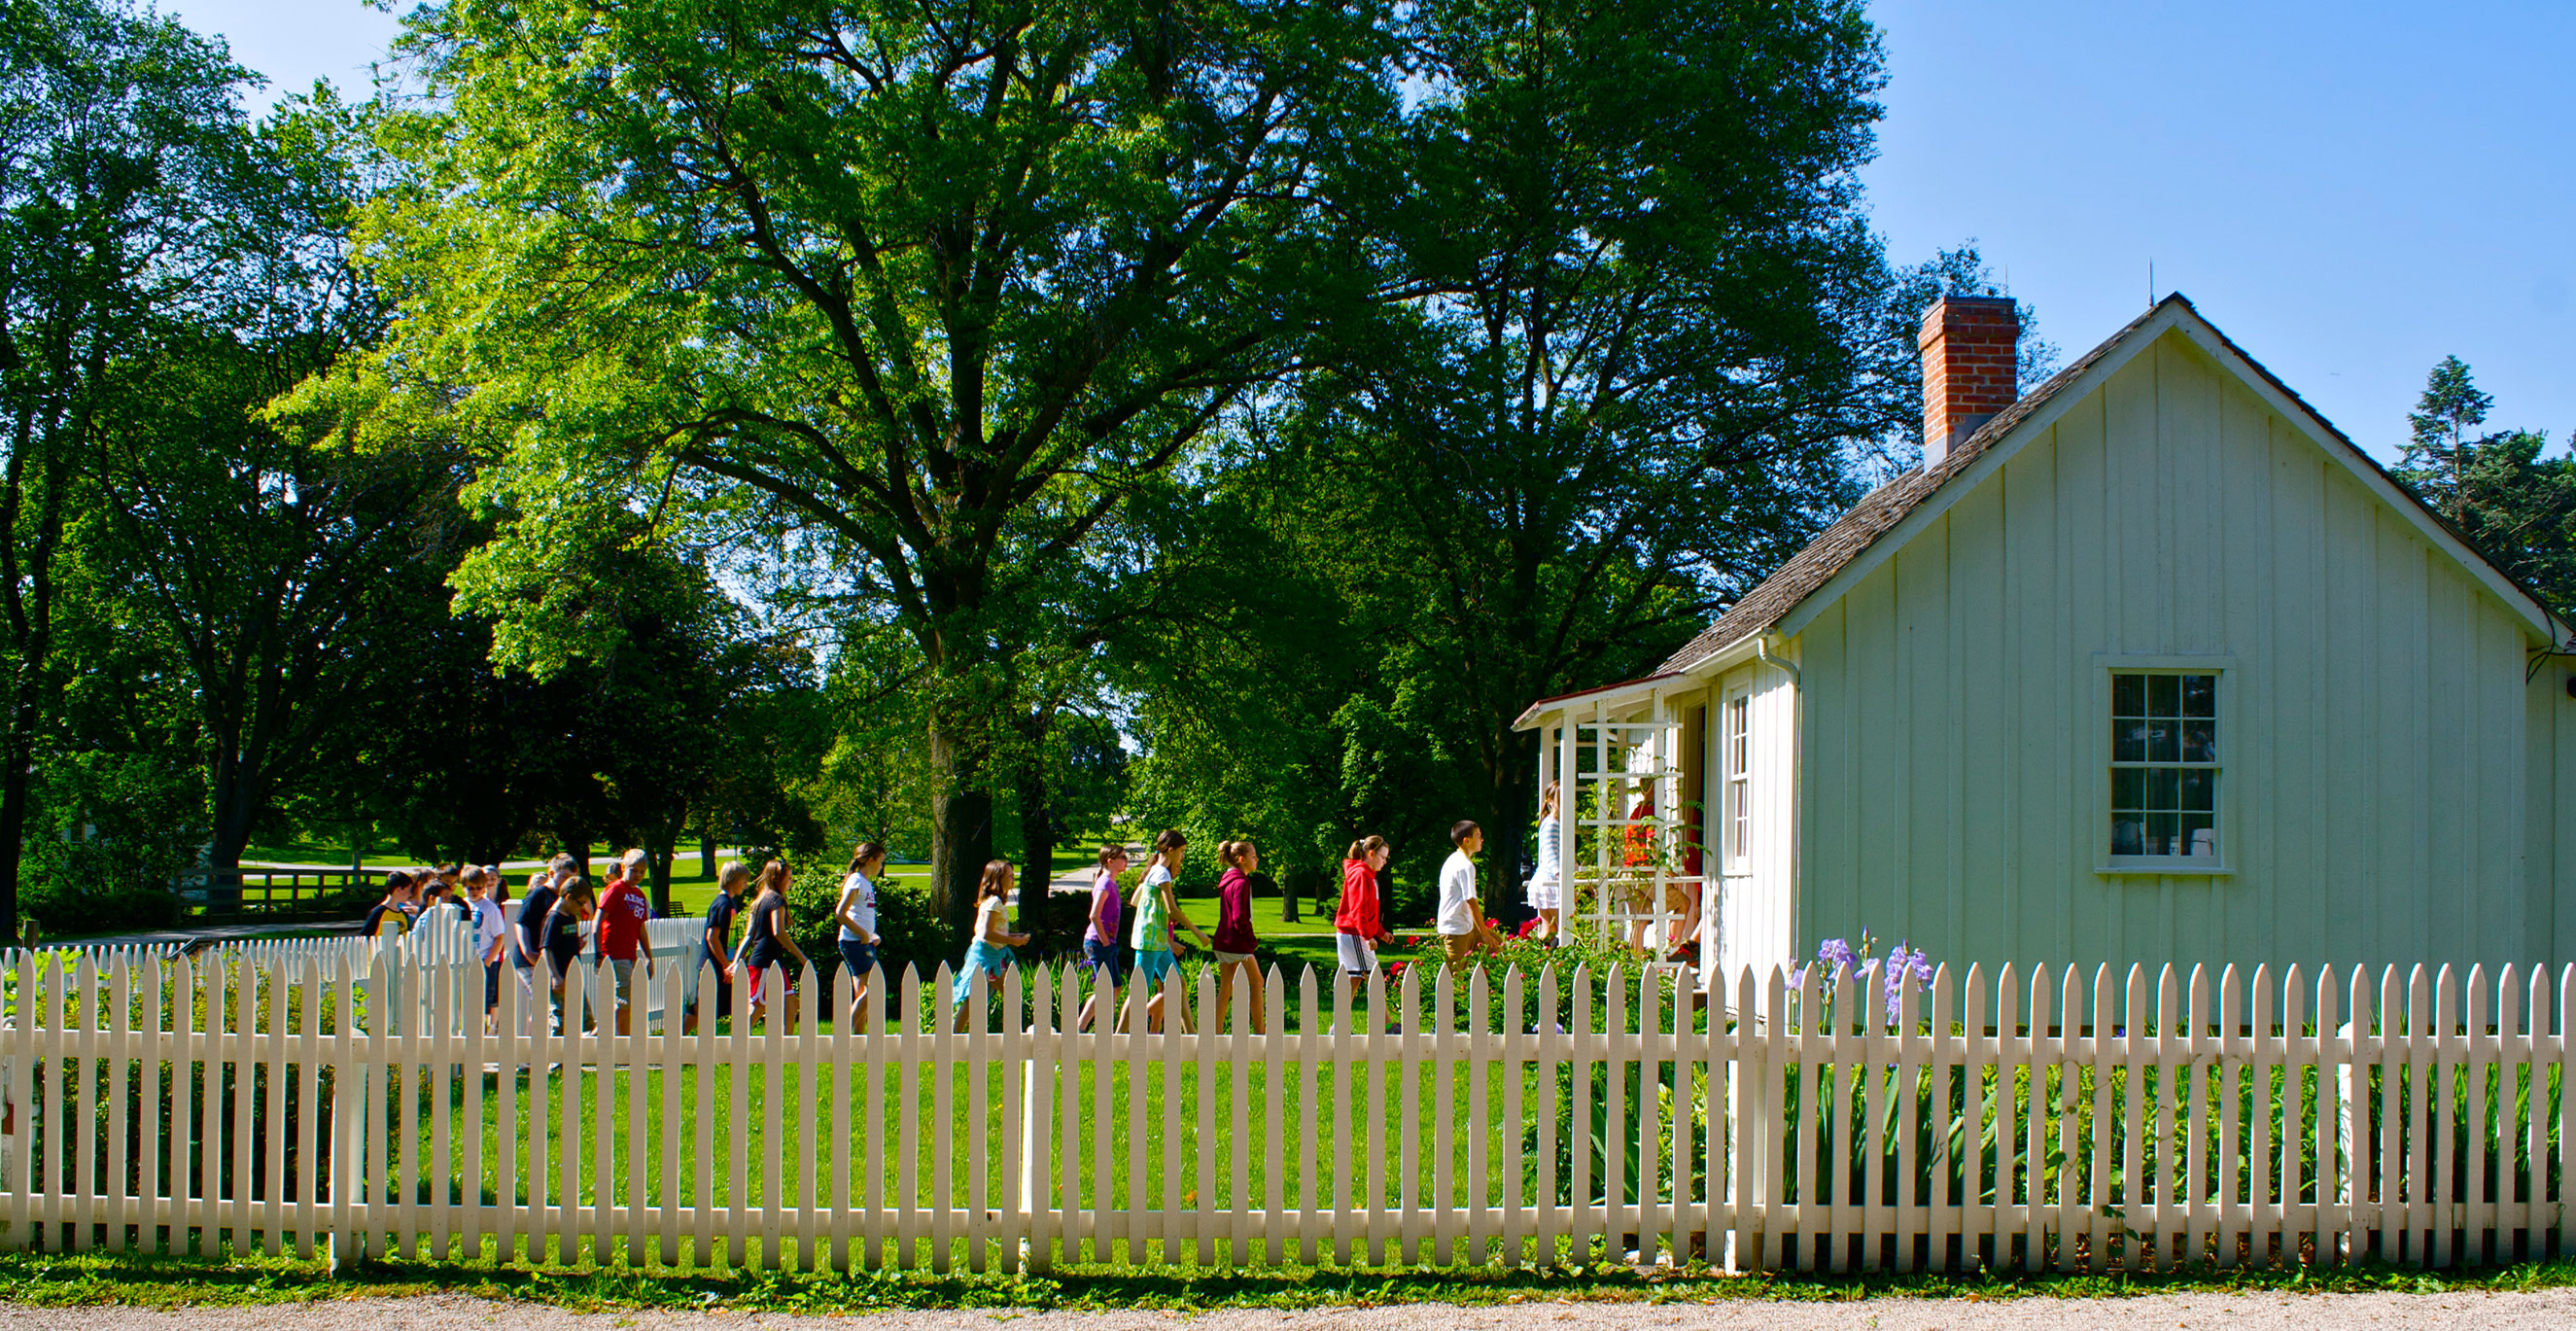 Children line up as they enter a small white cottage at a historical park.